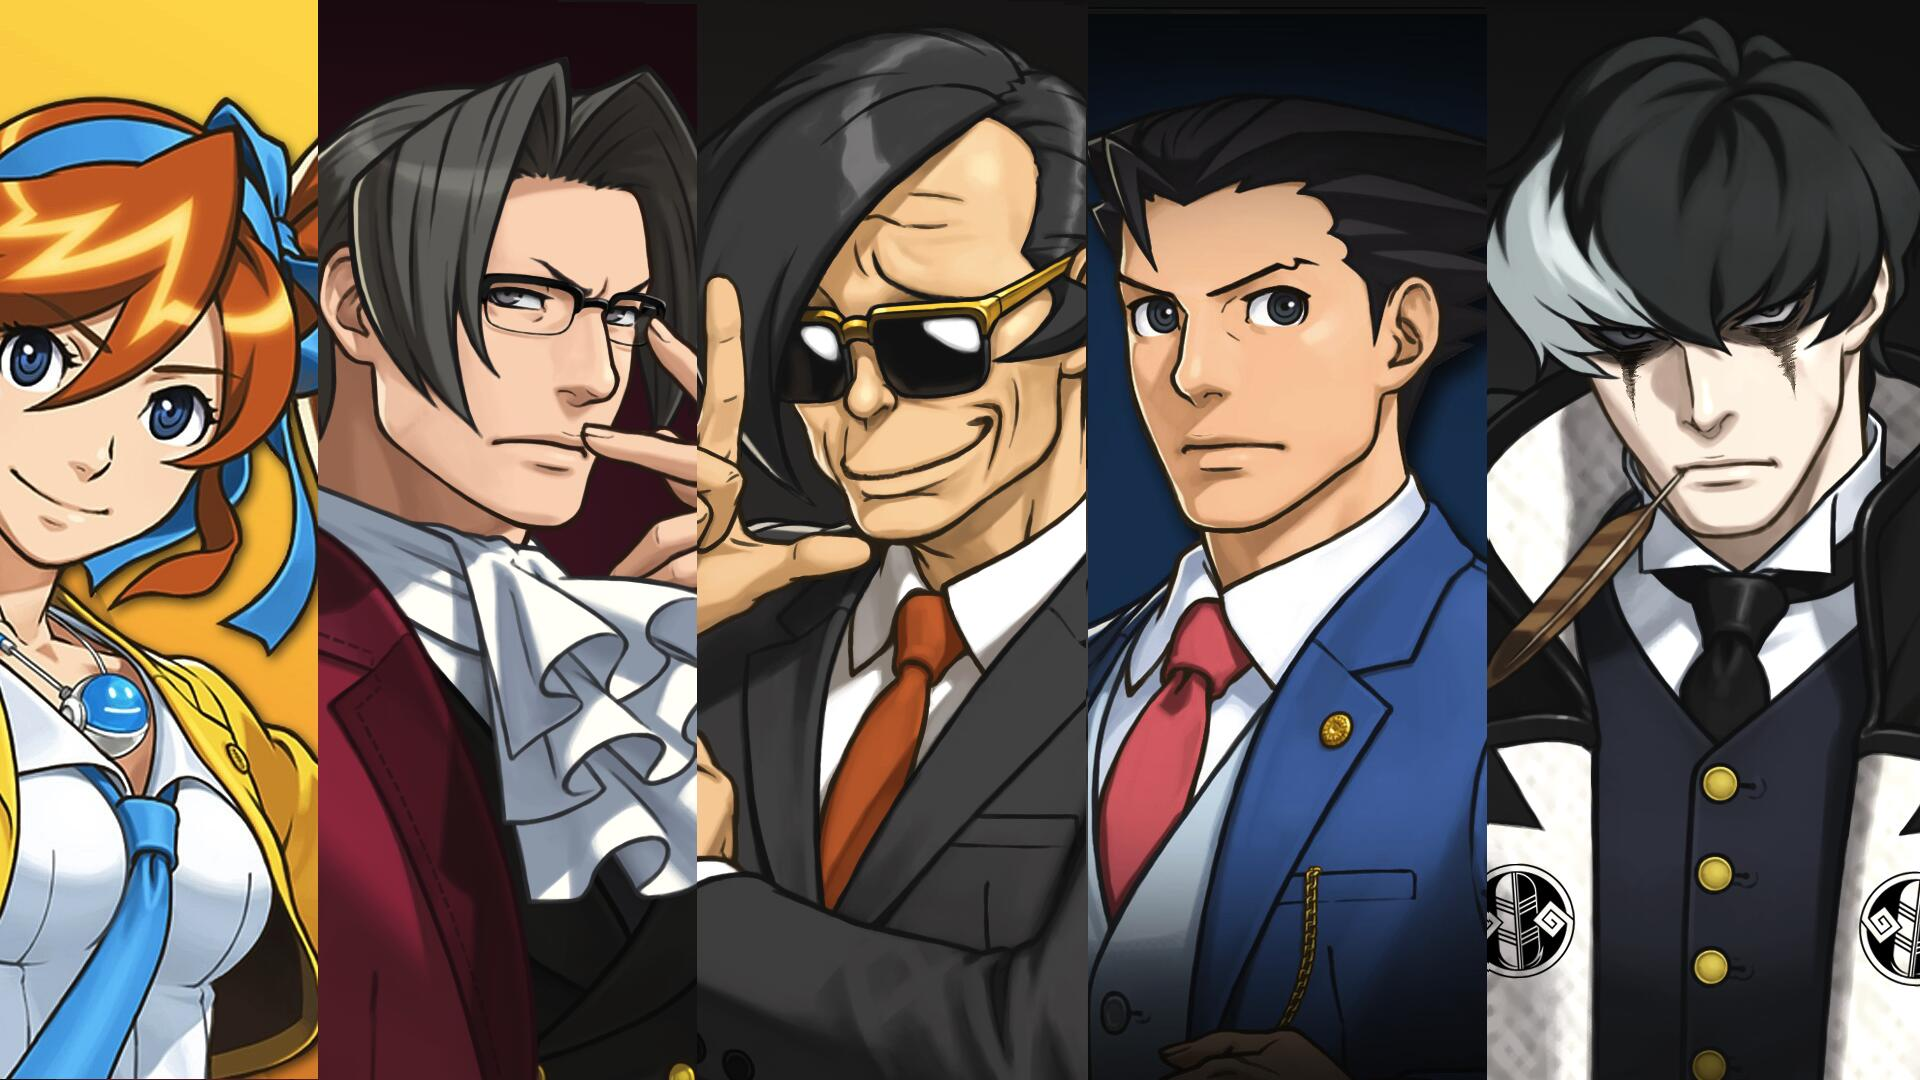 Letters from Phoenix Wright: Ace Attorney - Dual Destinies